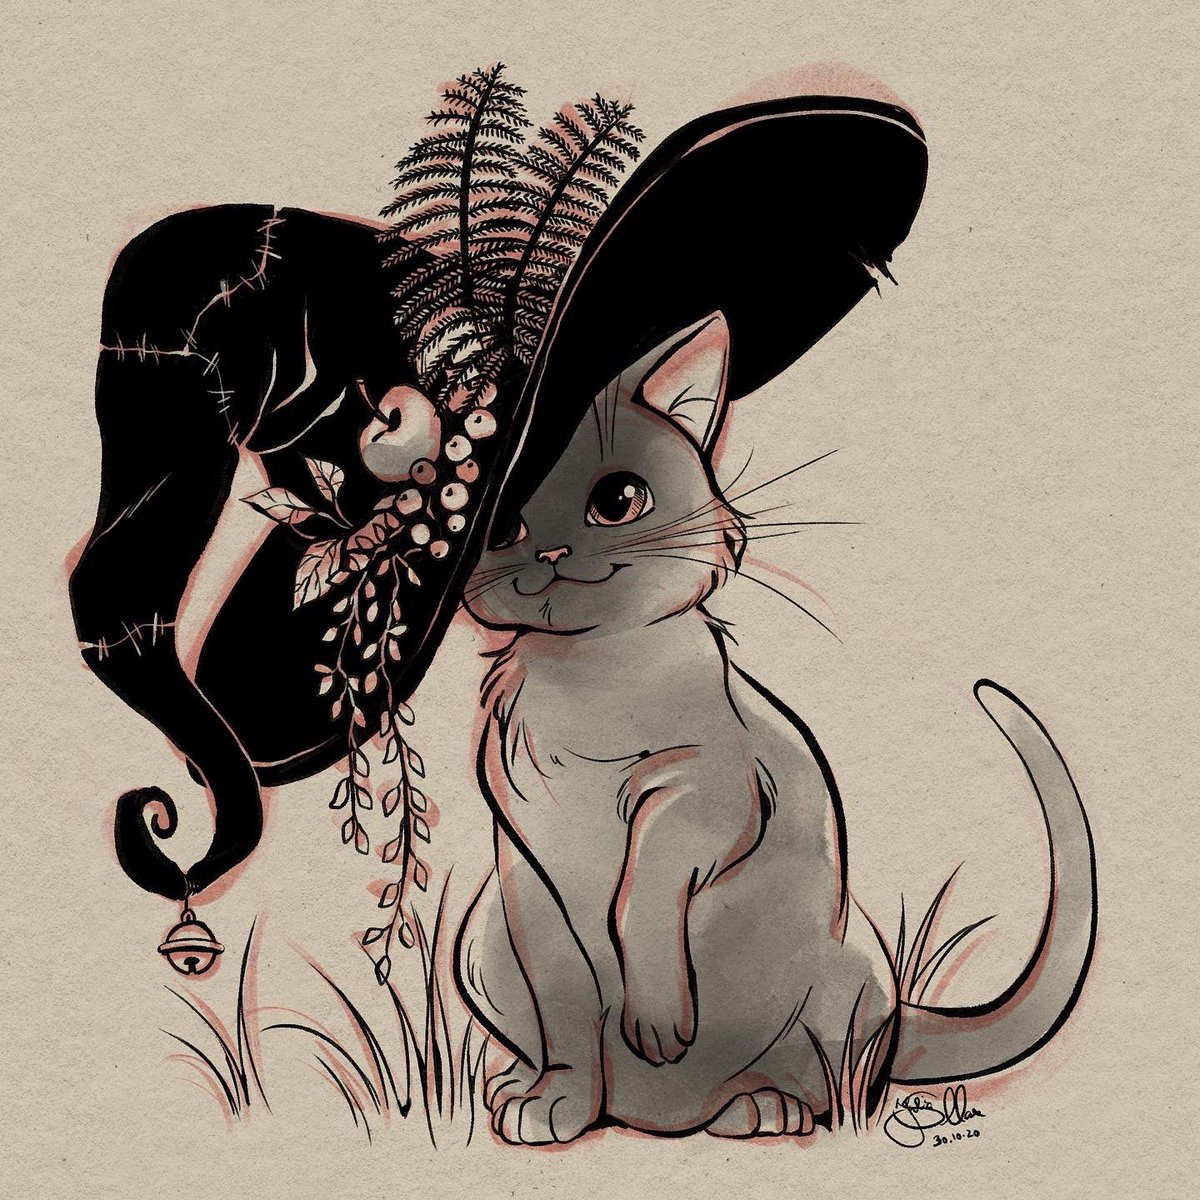 Inktober day 30: cat . (from @ArtsMadie's inktober promptlist) . The cat with the shrunken witch hat. 🐱 . . #madieink20 #songsofhalloween #inktober2020 #inktober  #witch #witchhat #cat #cats #katze   #hexenhut #witchhats #witchythings #witchyart  #inkdrawing #inkdrawings https://t.co/xAlDsc2DtK